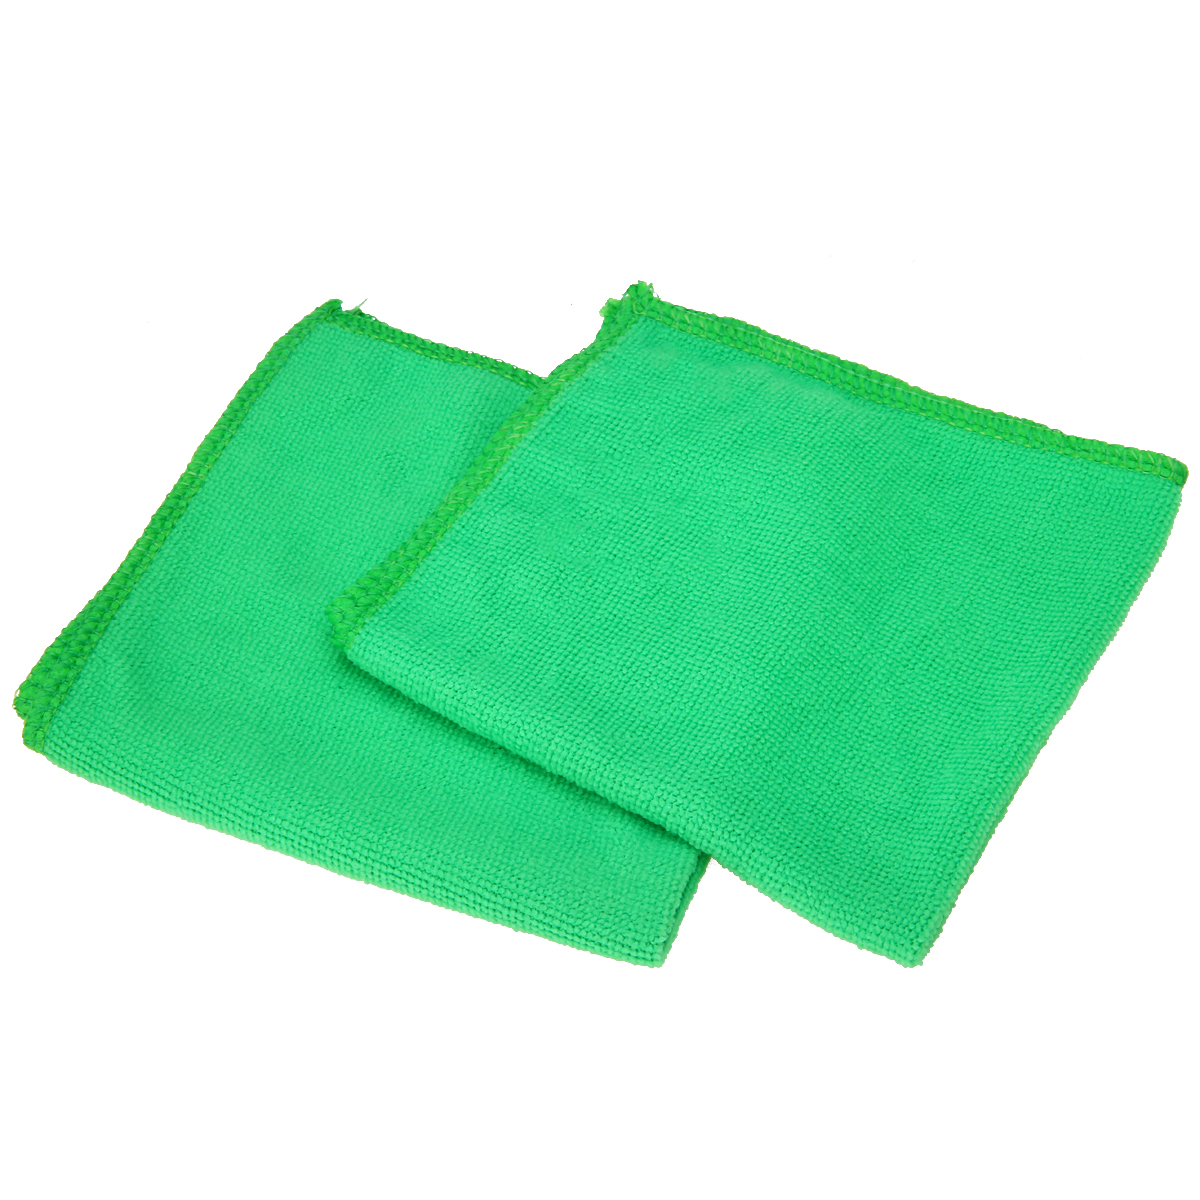 Image 5 - Mayitr 1Set 10X Green Microfiber Cleaning Auto Car Detailing Soft Microfiber Cloths Wash Towel Duster Home Clean 25*25CM-in Sponges, Cloths & Brushes from Automobiles & Motorcycles